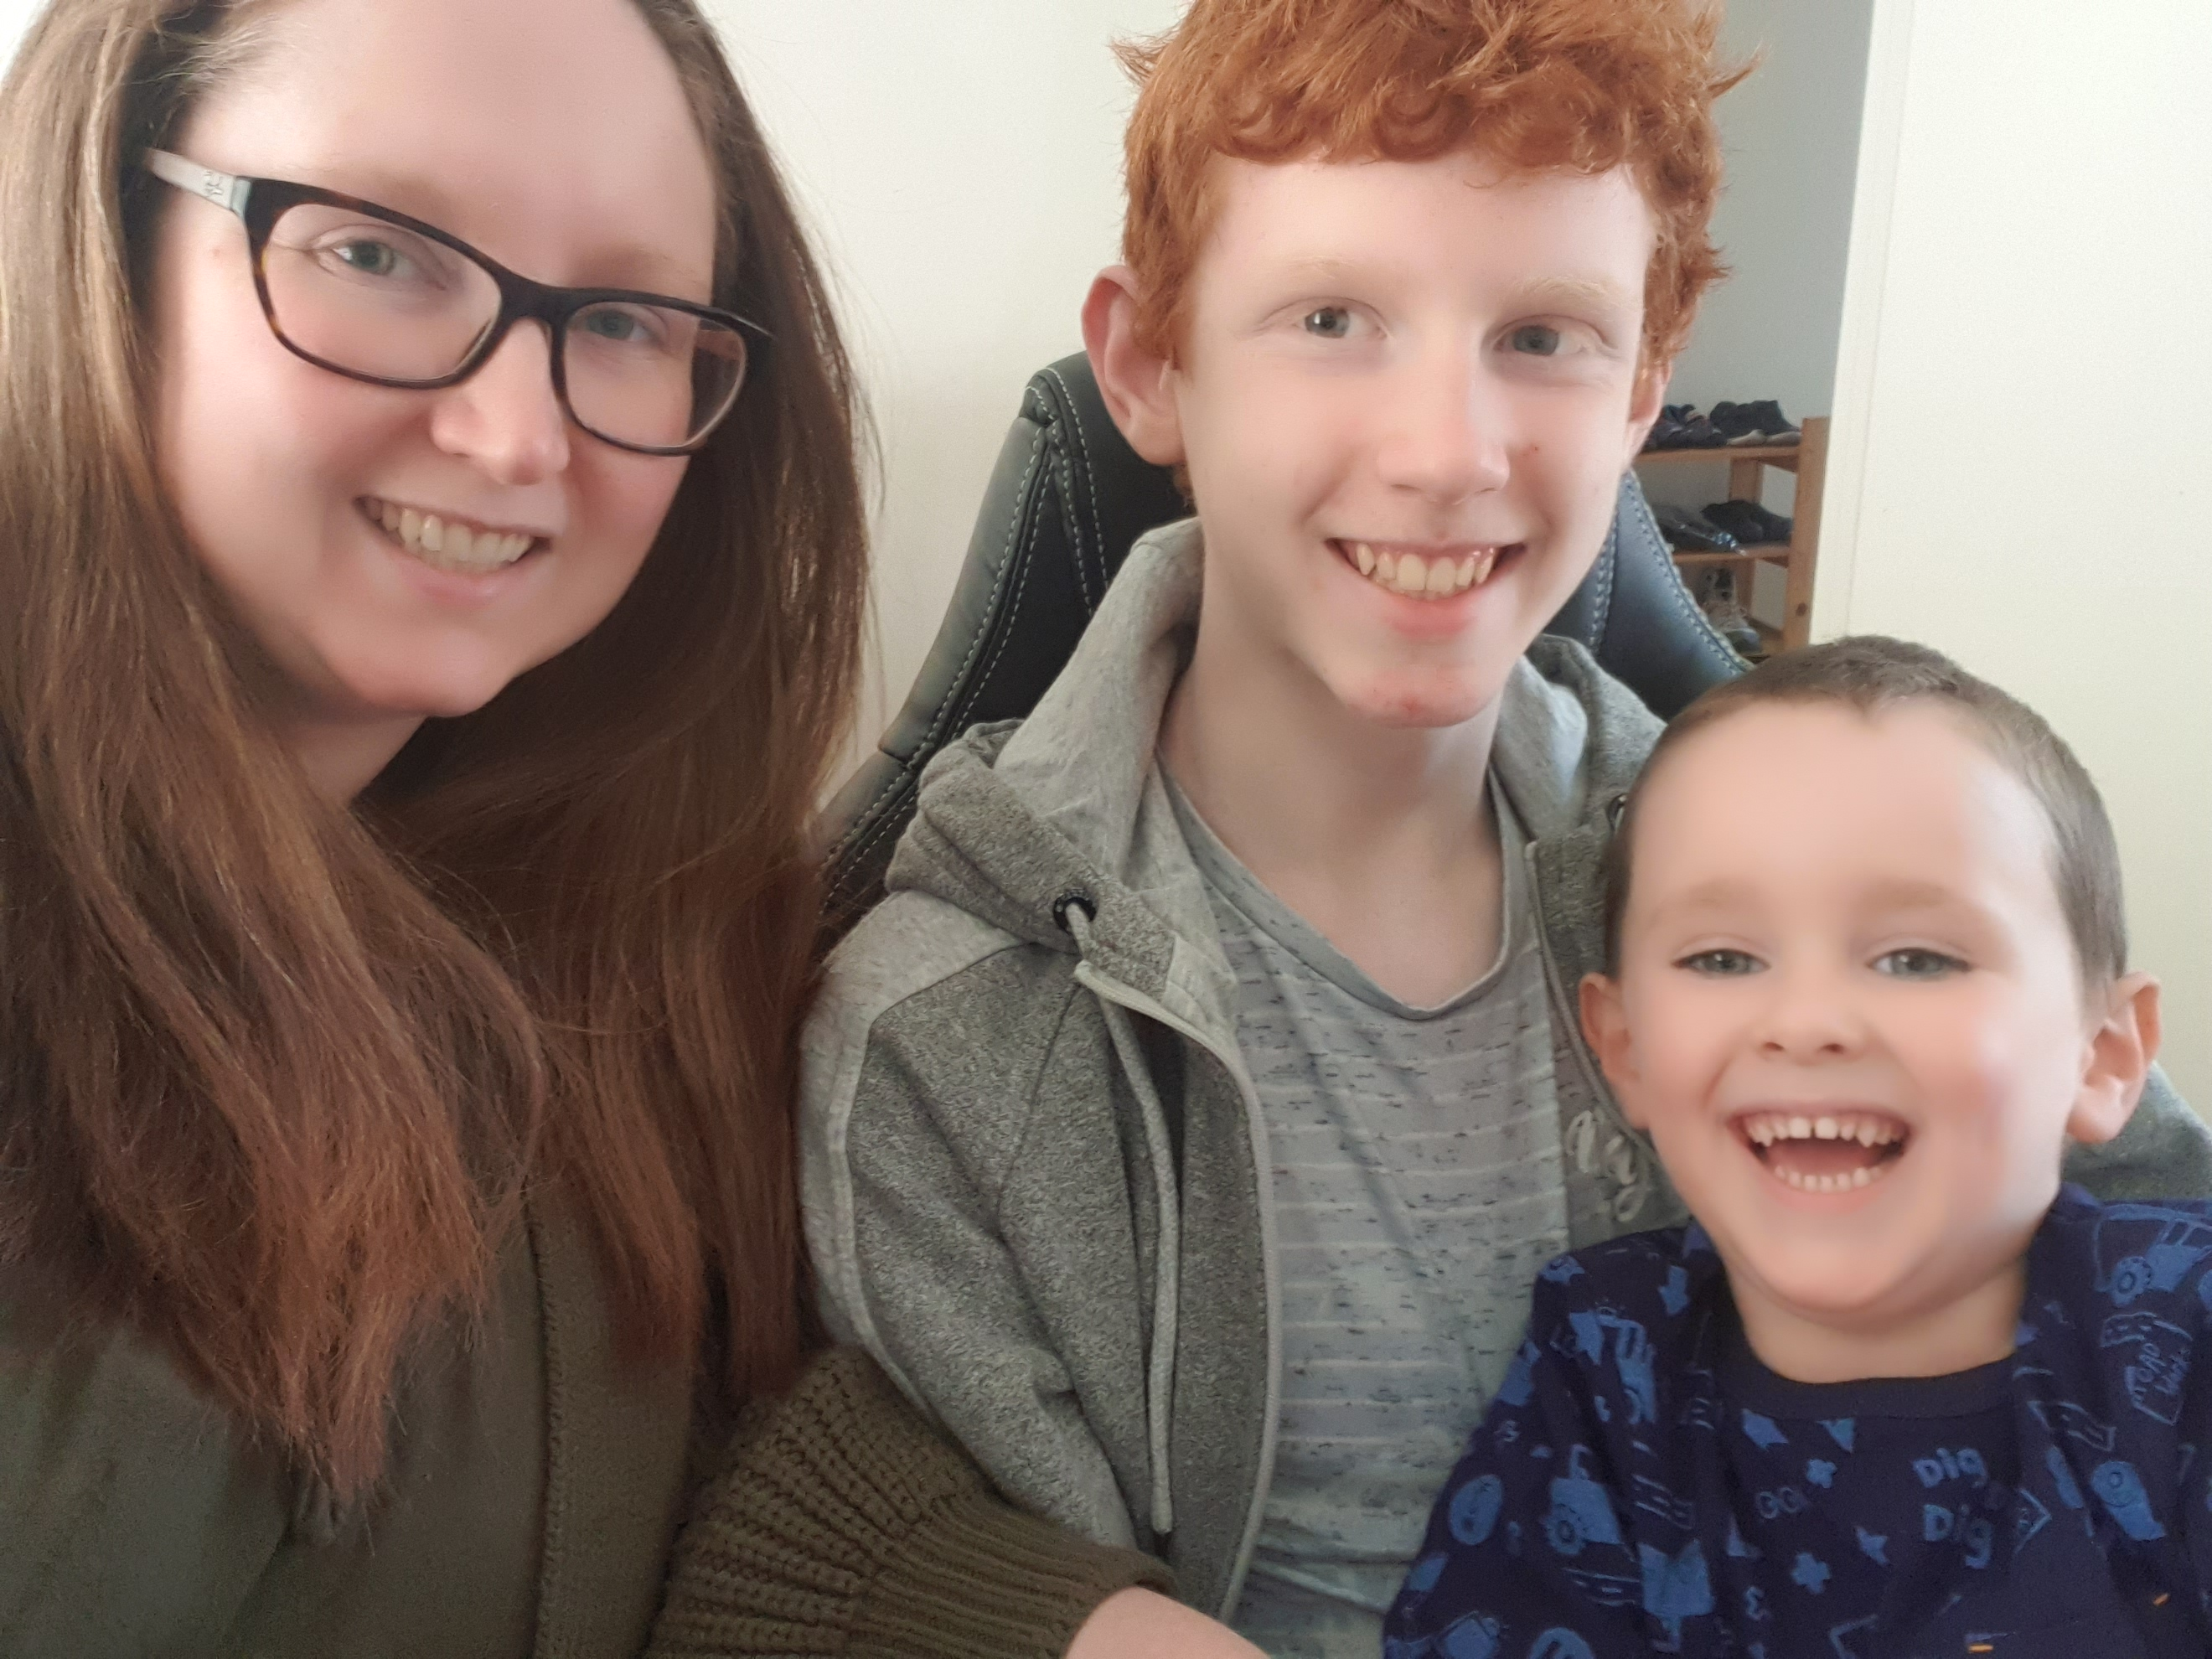 Furloughed worker south Belfast mum Debra Smyth pictured with her two sons at the start of her lockdown learning journey with make it click and training matchmaker